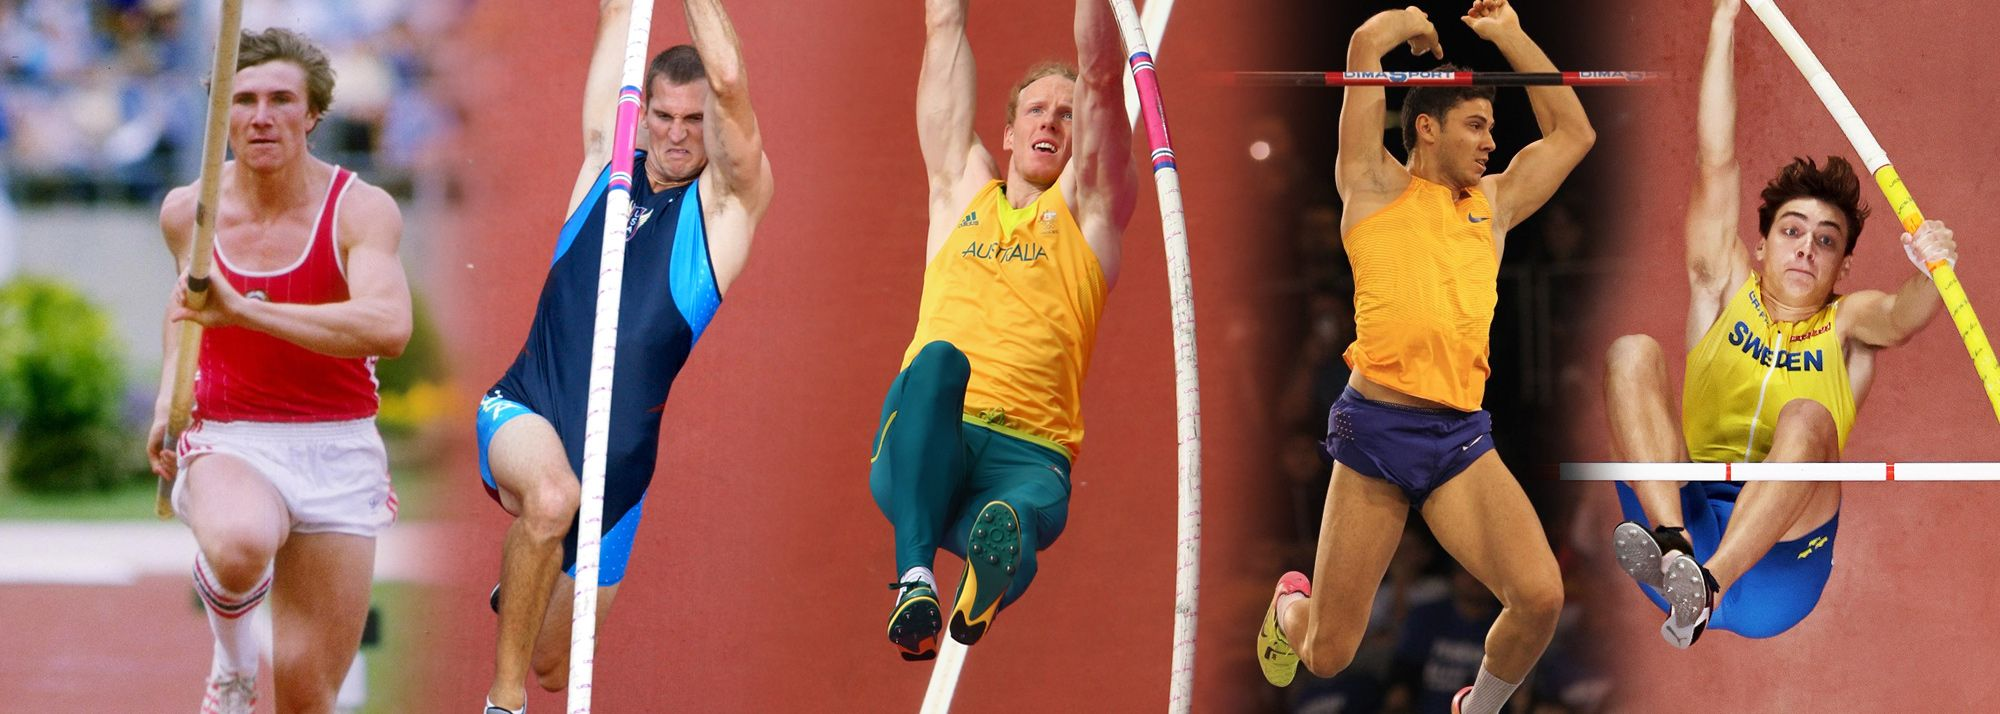 The six-metre pole vault remains one of the most elusive barriers in elite athletics yet it is also one of the most universal.